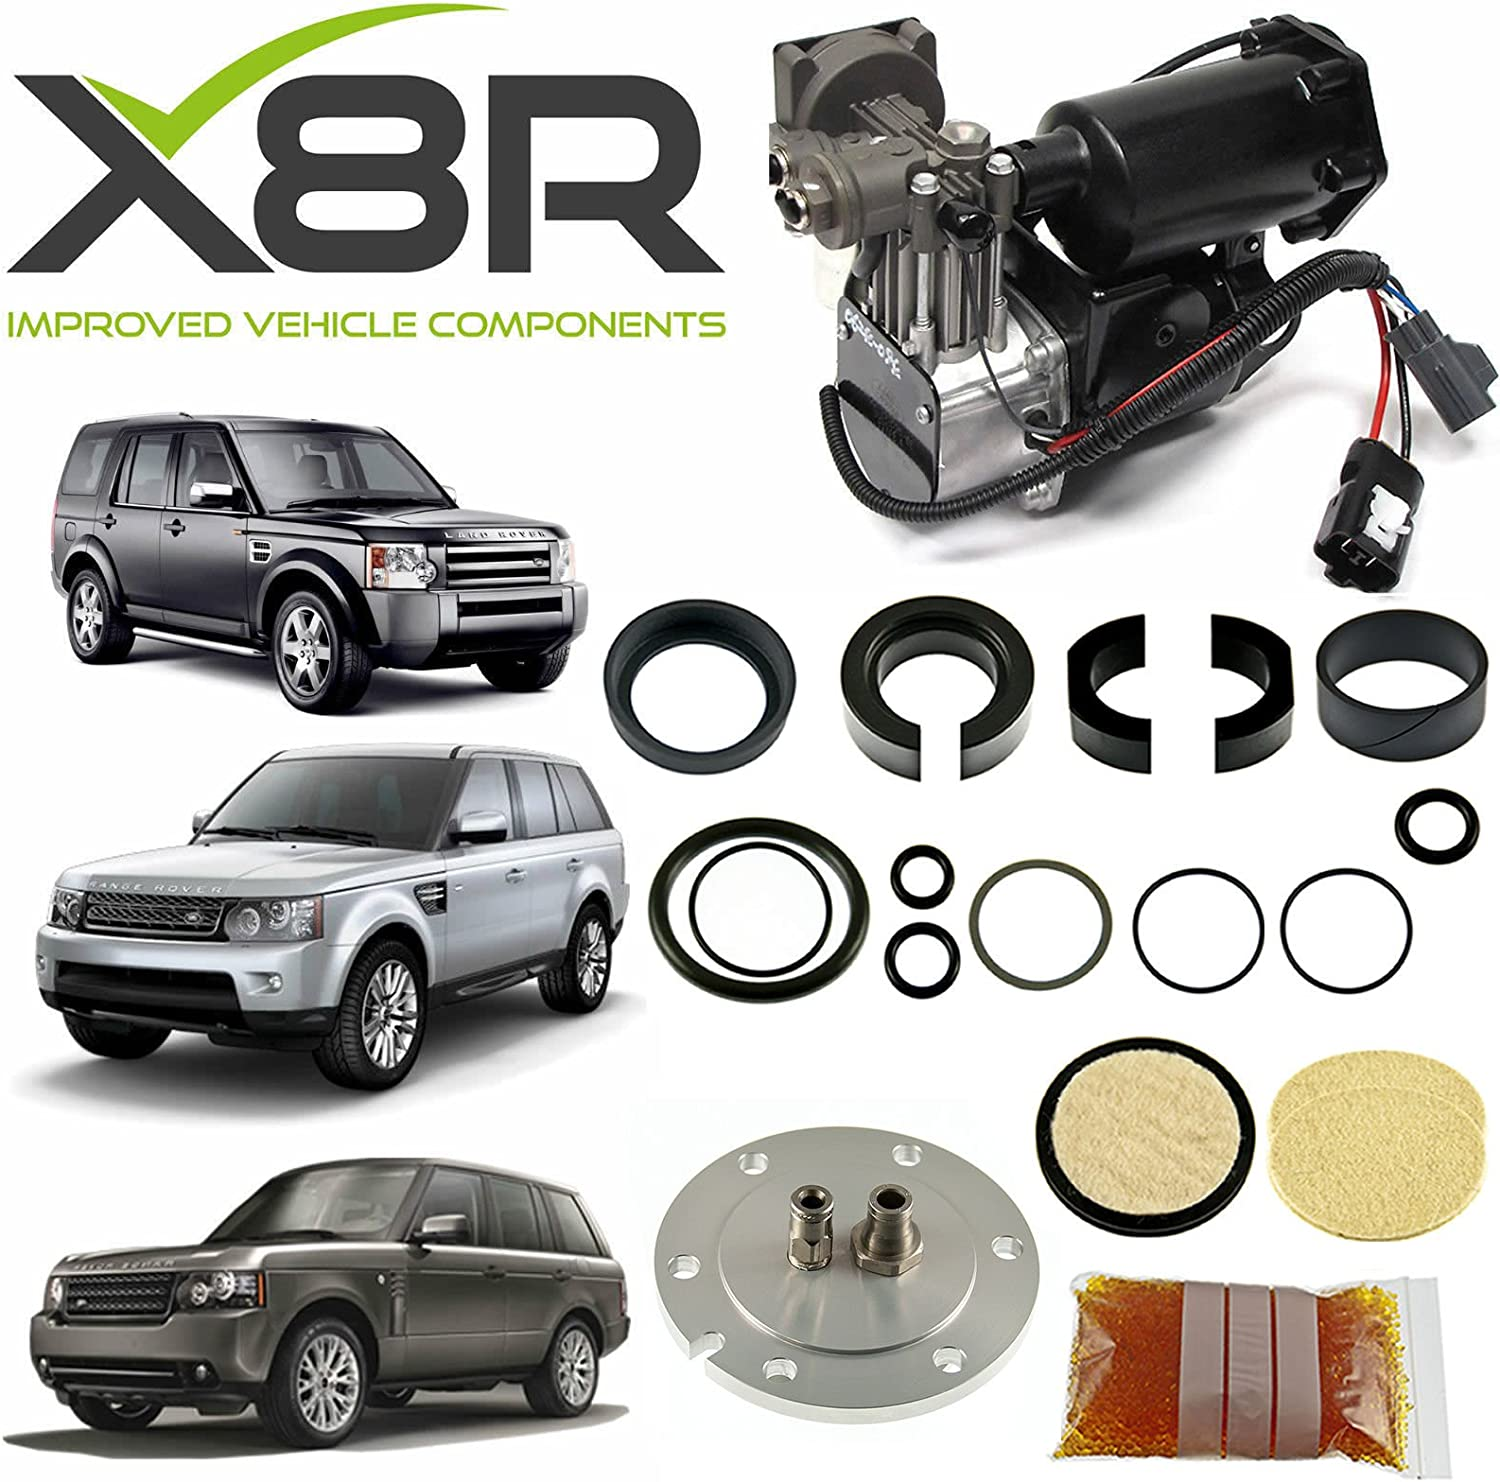 X8R RESTORE KIT FOR HITACHI AIR COMPRESSOR AND FILTER DRYER REBUILD COMPATIBLE WITH LAND ROVER LR3 / LR4 / RANGE ROVER SPORT & RANGE ROVER L322, PART # X8R44 / X8R0044